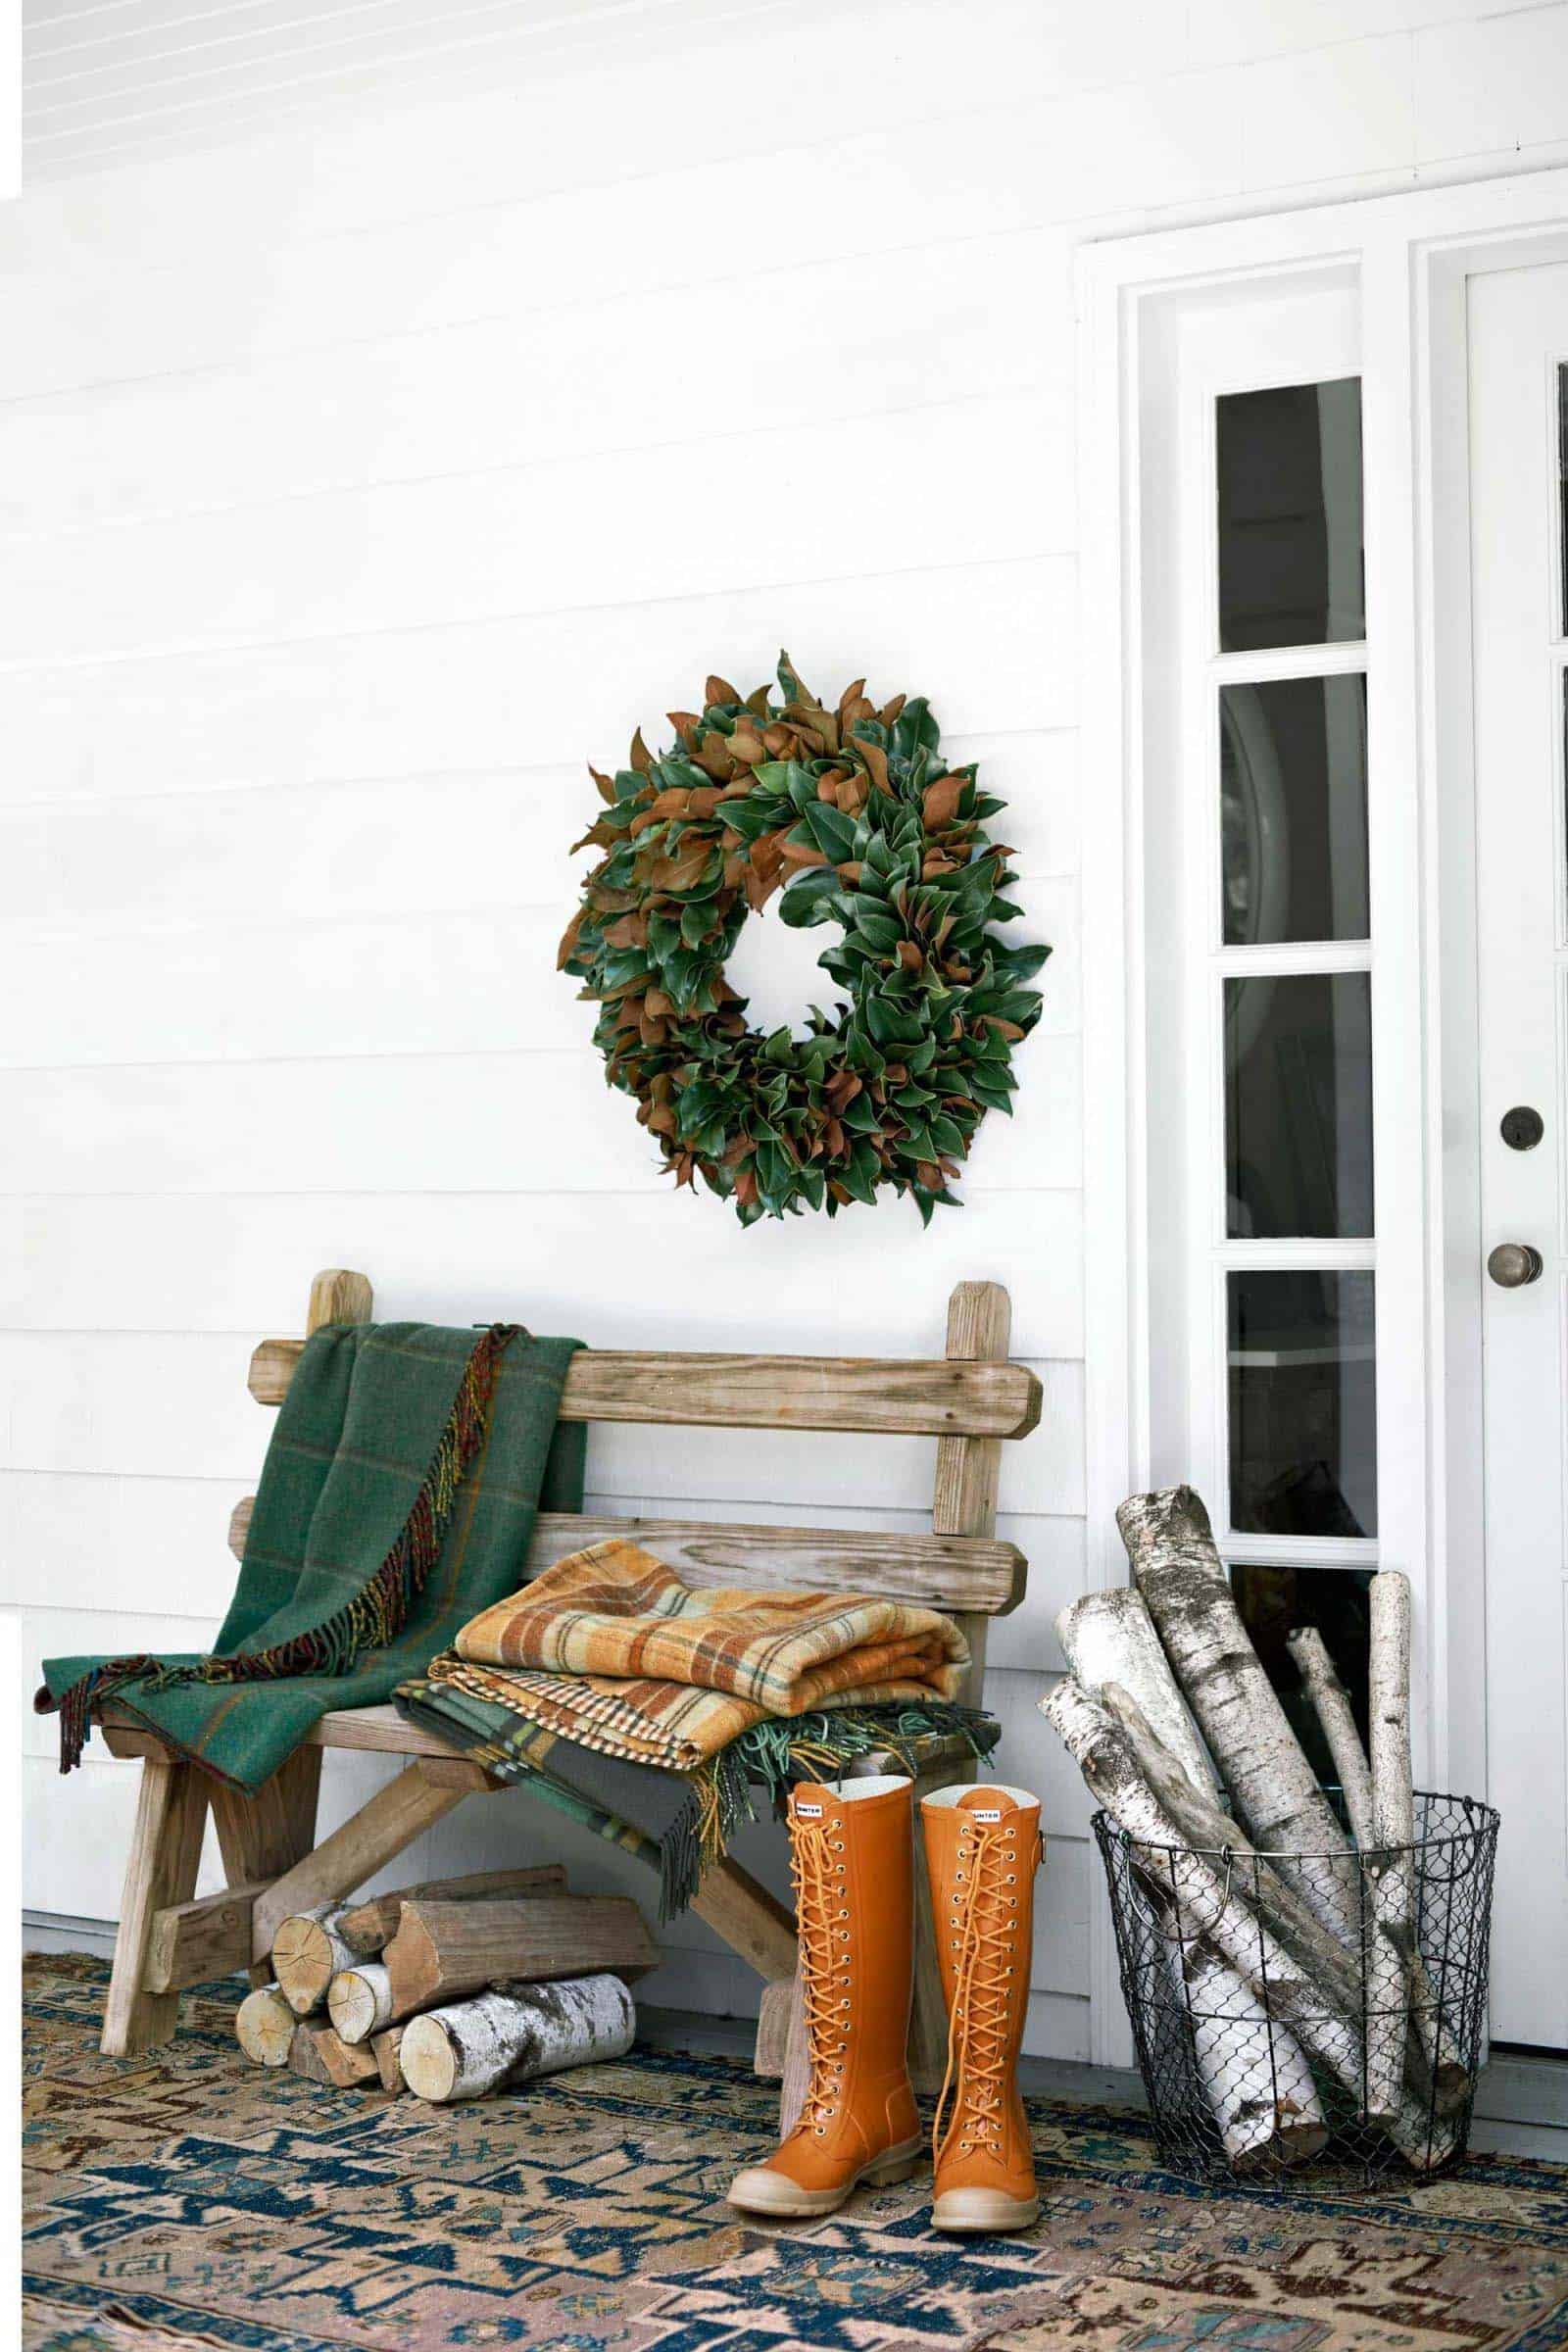 46 of the Coziest Ways to Decorate your Outdoor Spaces for ... on Garden Decor Ideas  id=78879